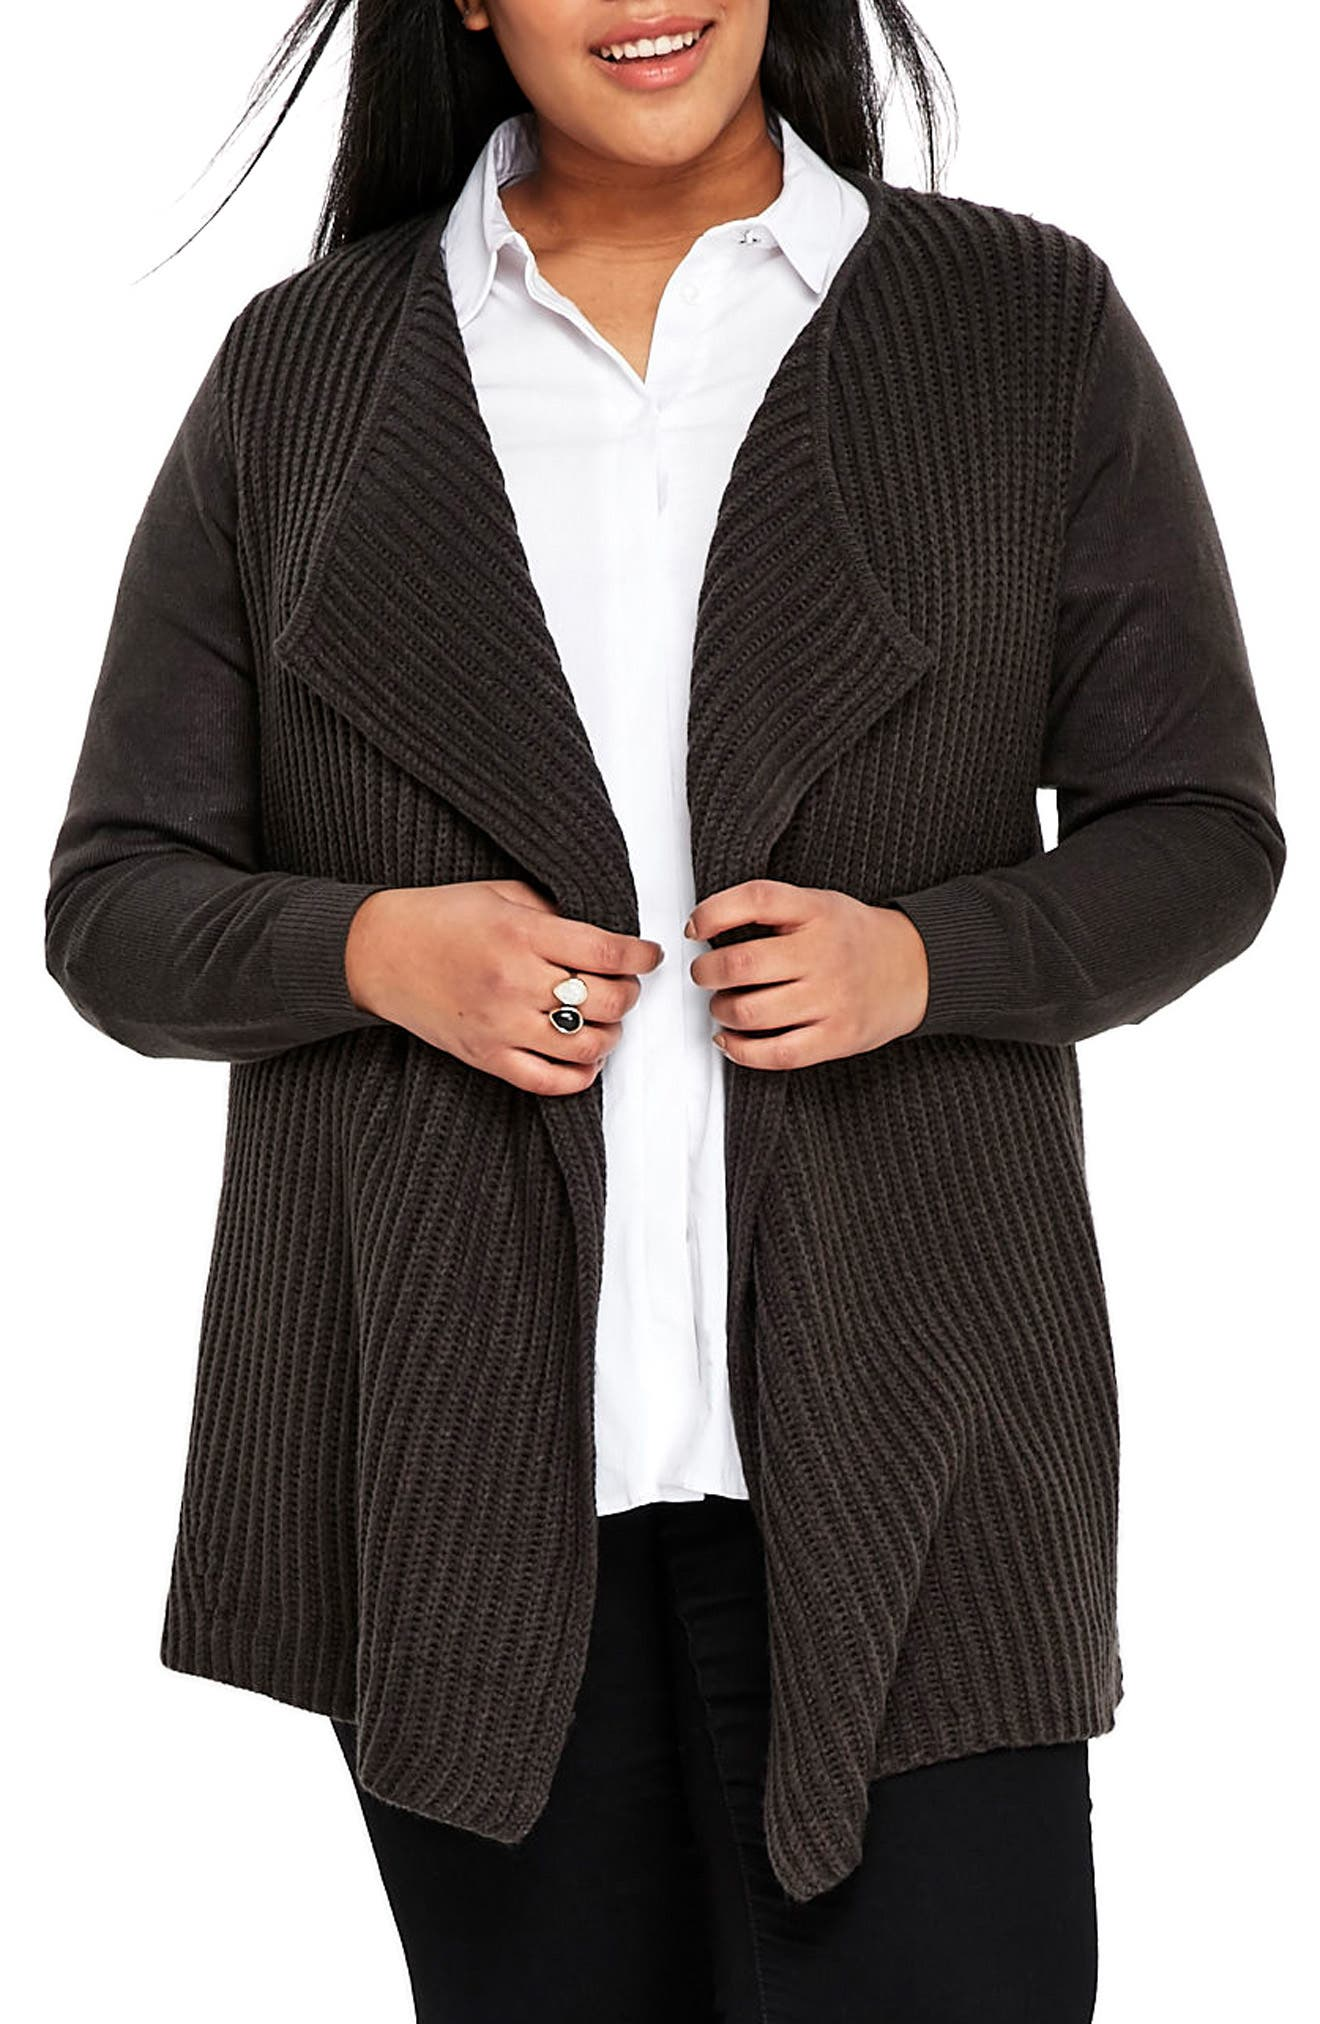 Alternate Image 1 Selected - Evans Ribbed Waterfall Cardigan (Plus Size)